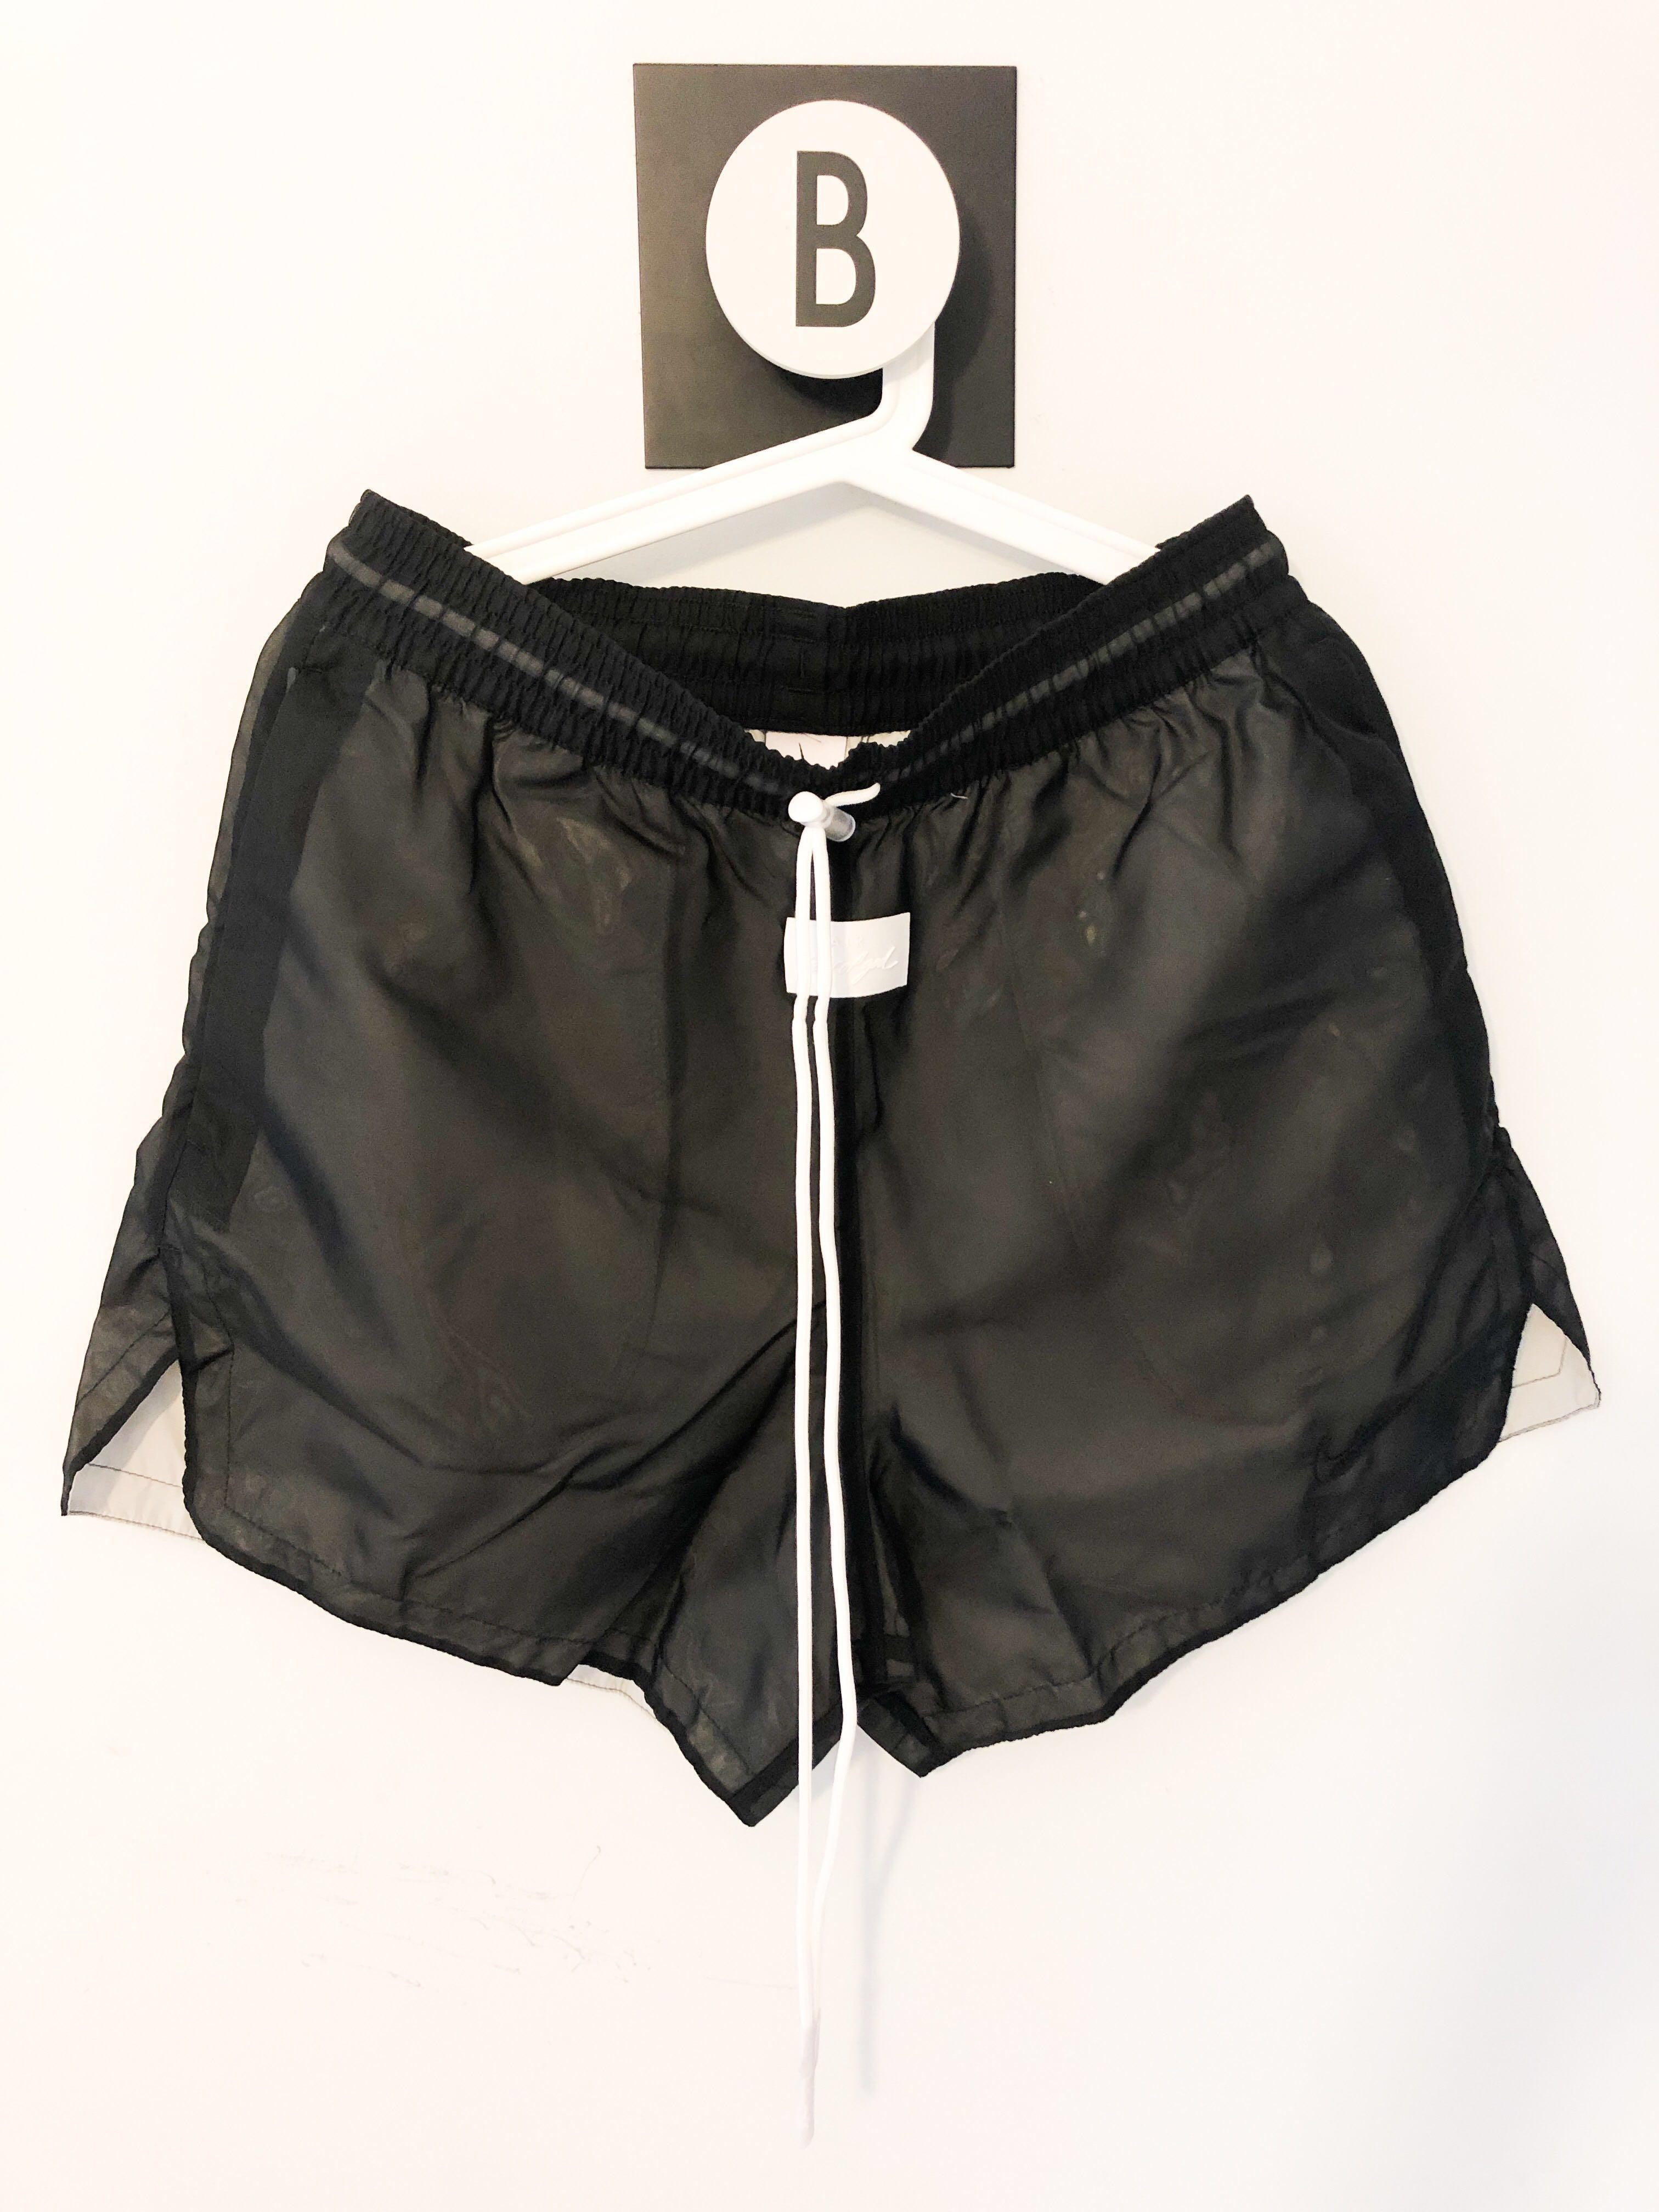 6bc74085d7 Nike x Fear of God Stretch Shorts Size S & M, Men's Fashion, Clothes ...